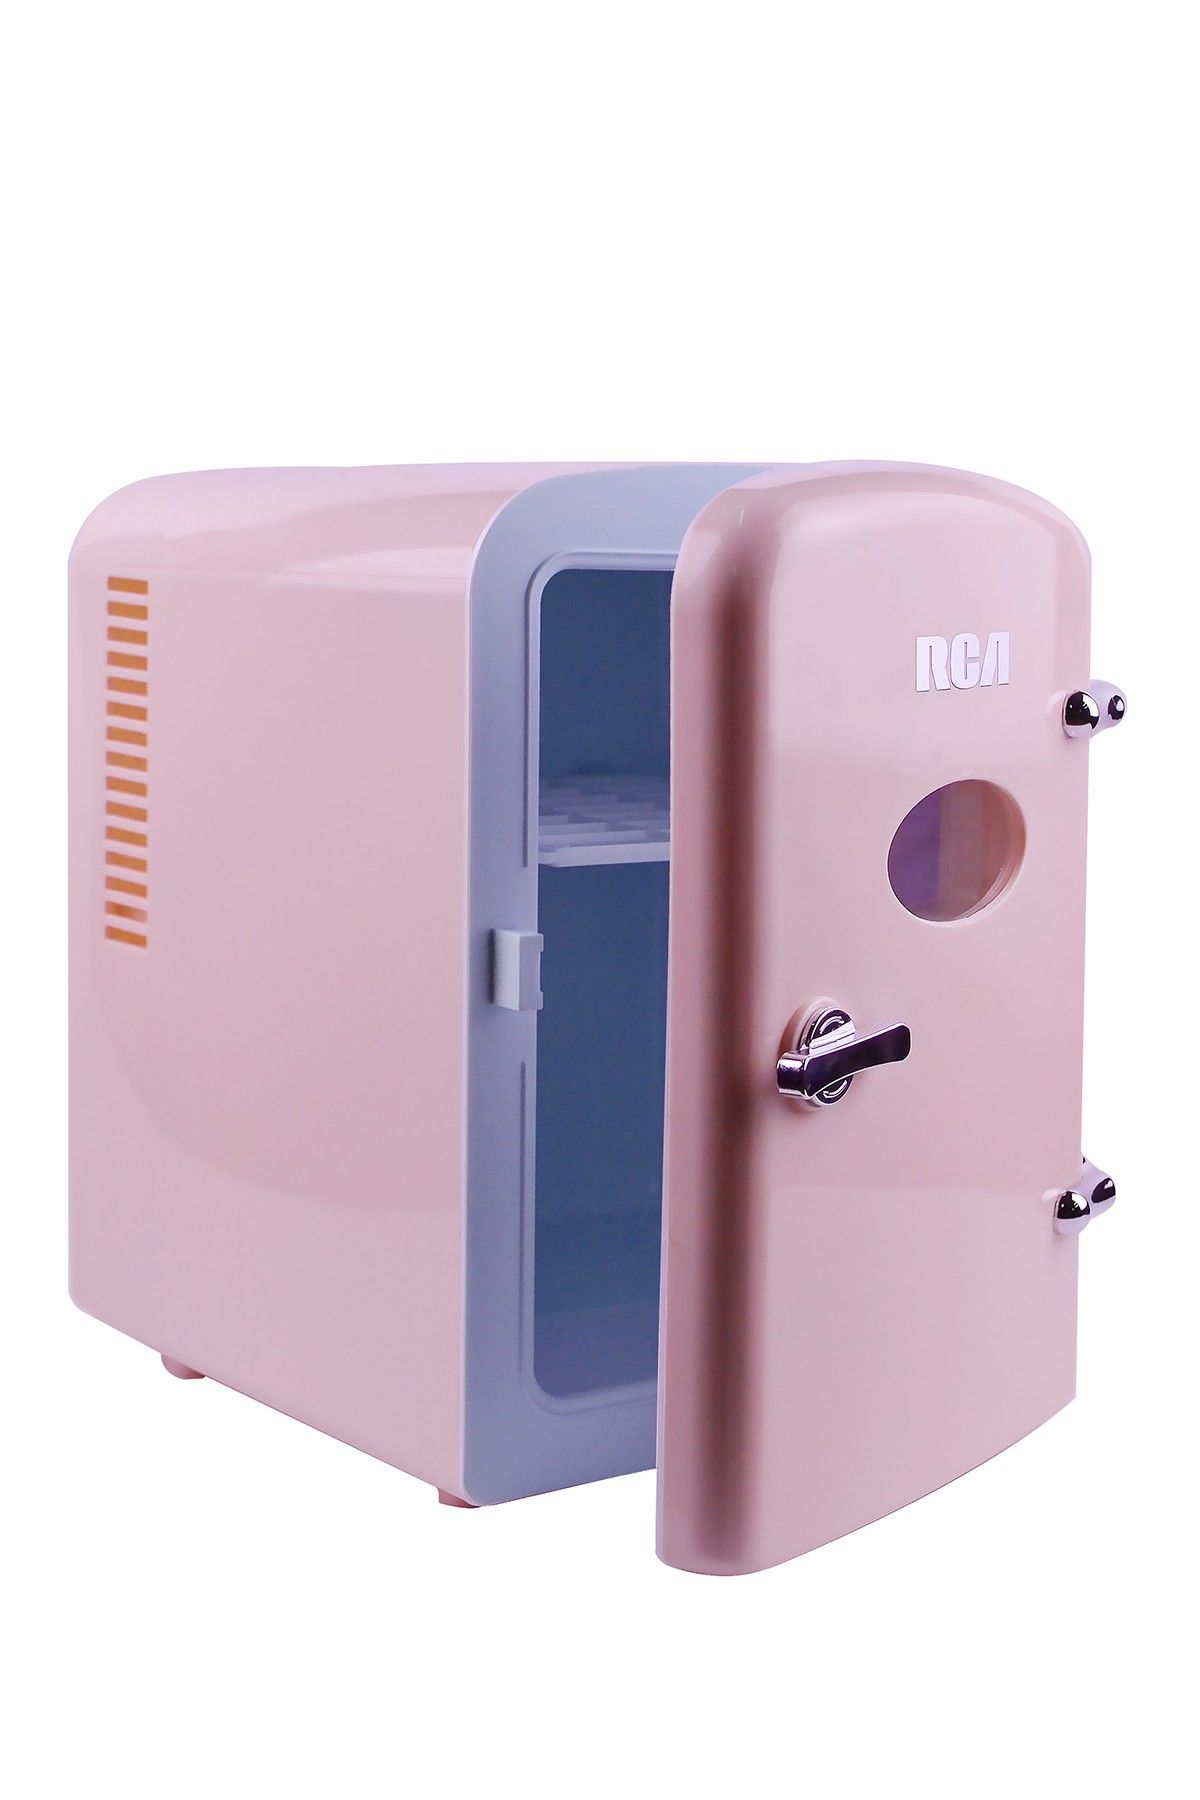 Rca Pink 6 Can Mini Retro Fridge Nordstrom Rack Retro Fridge Pink Mini Fridge Retro Pink Bedroom